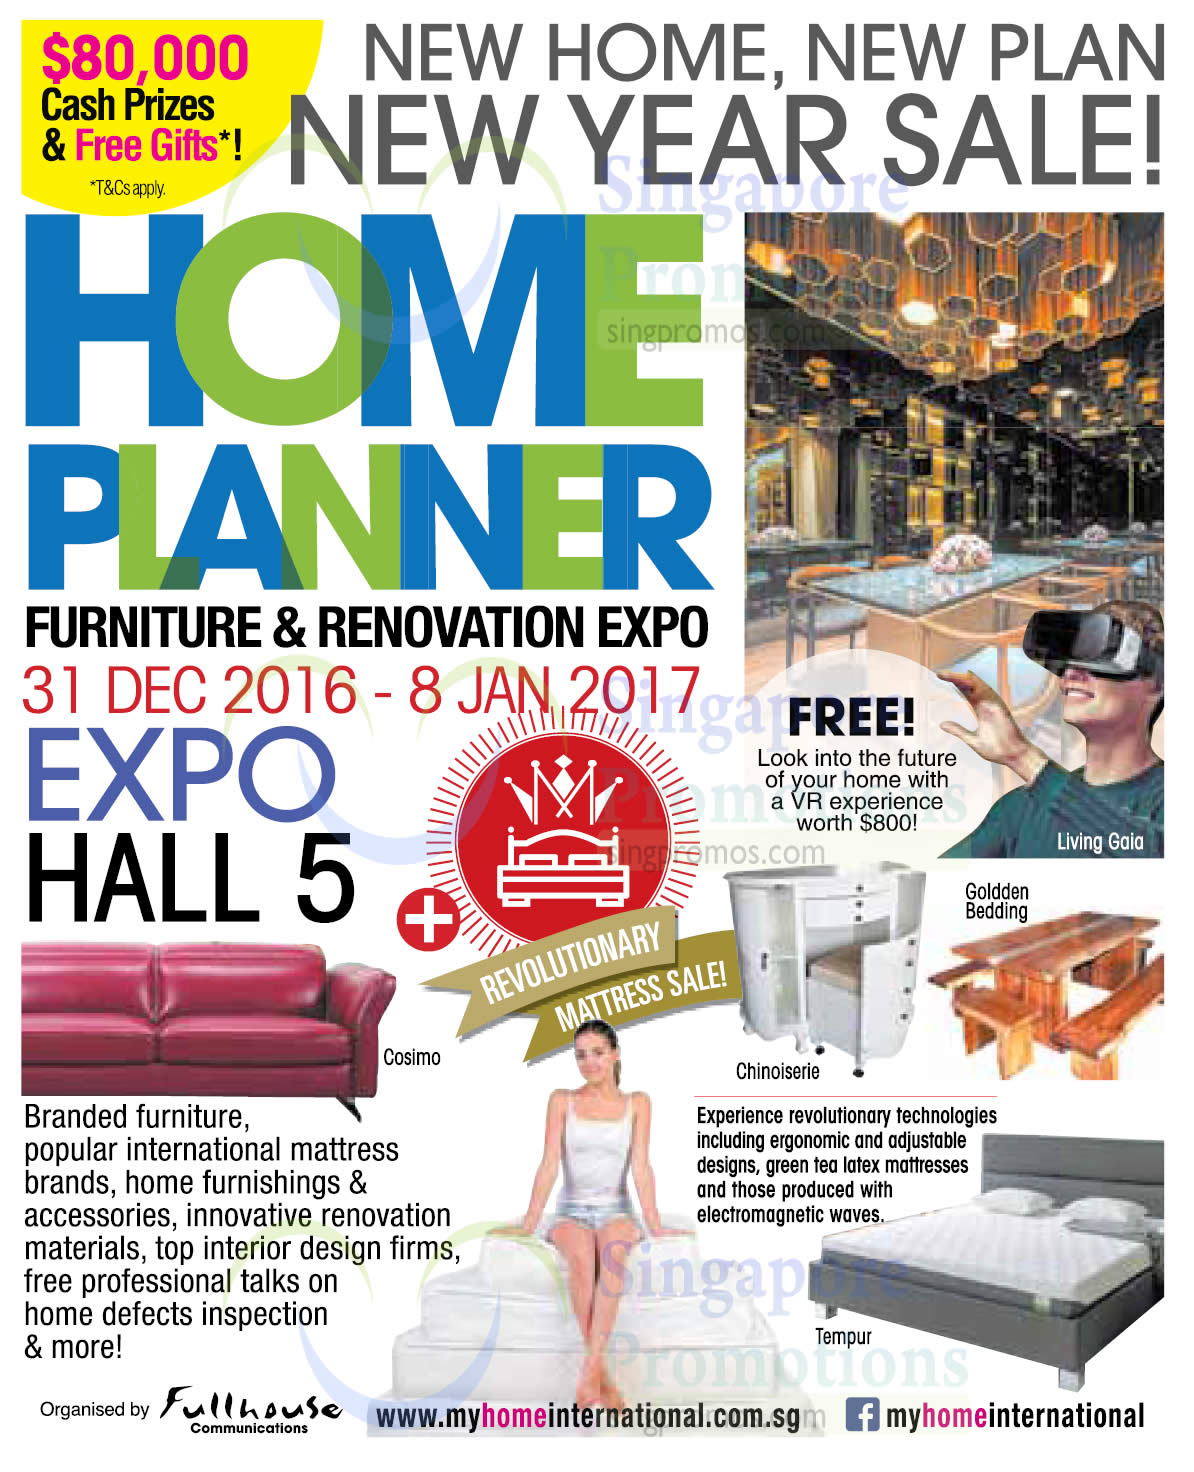 Home Planner 30 Dec 2016 Home Planner Show At Singapore Expo From 31 Dec 2016 8